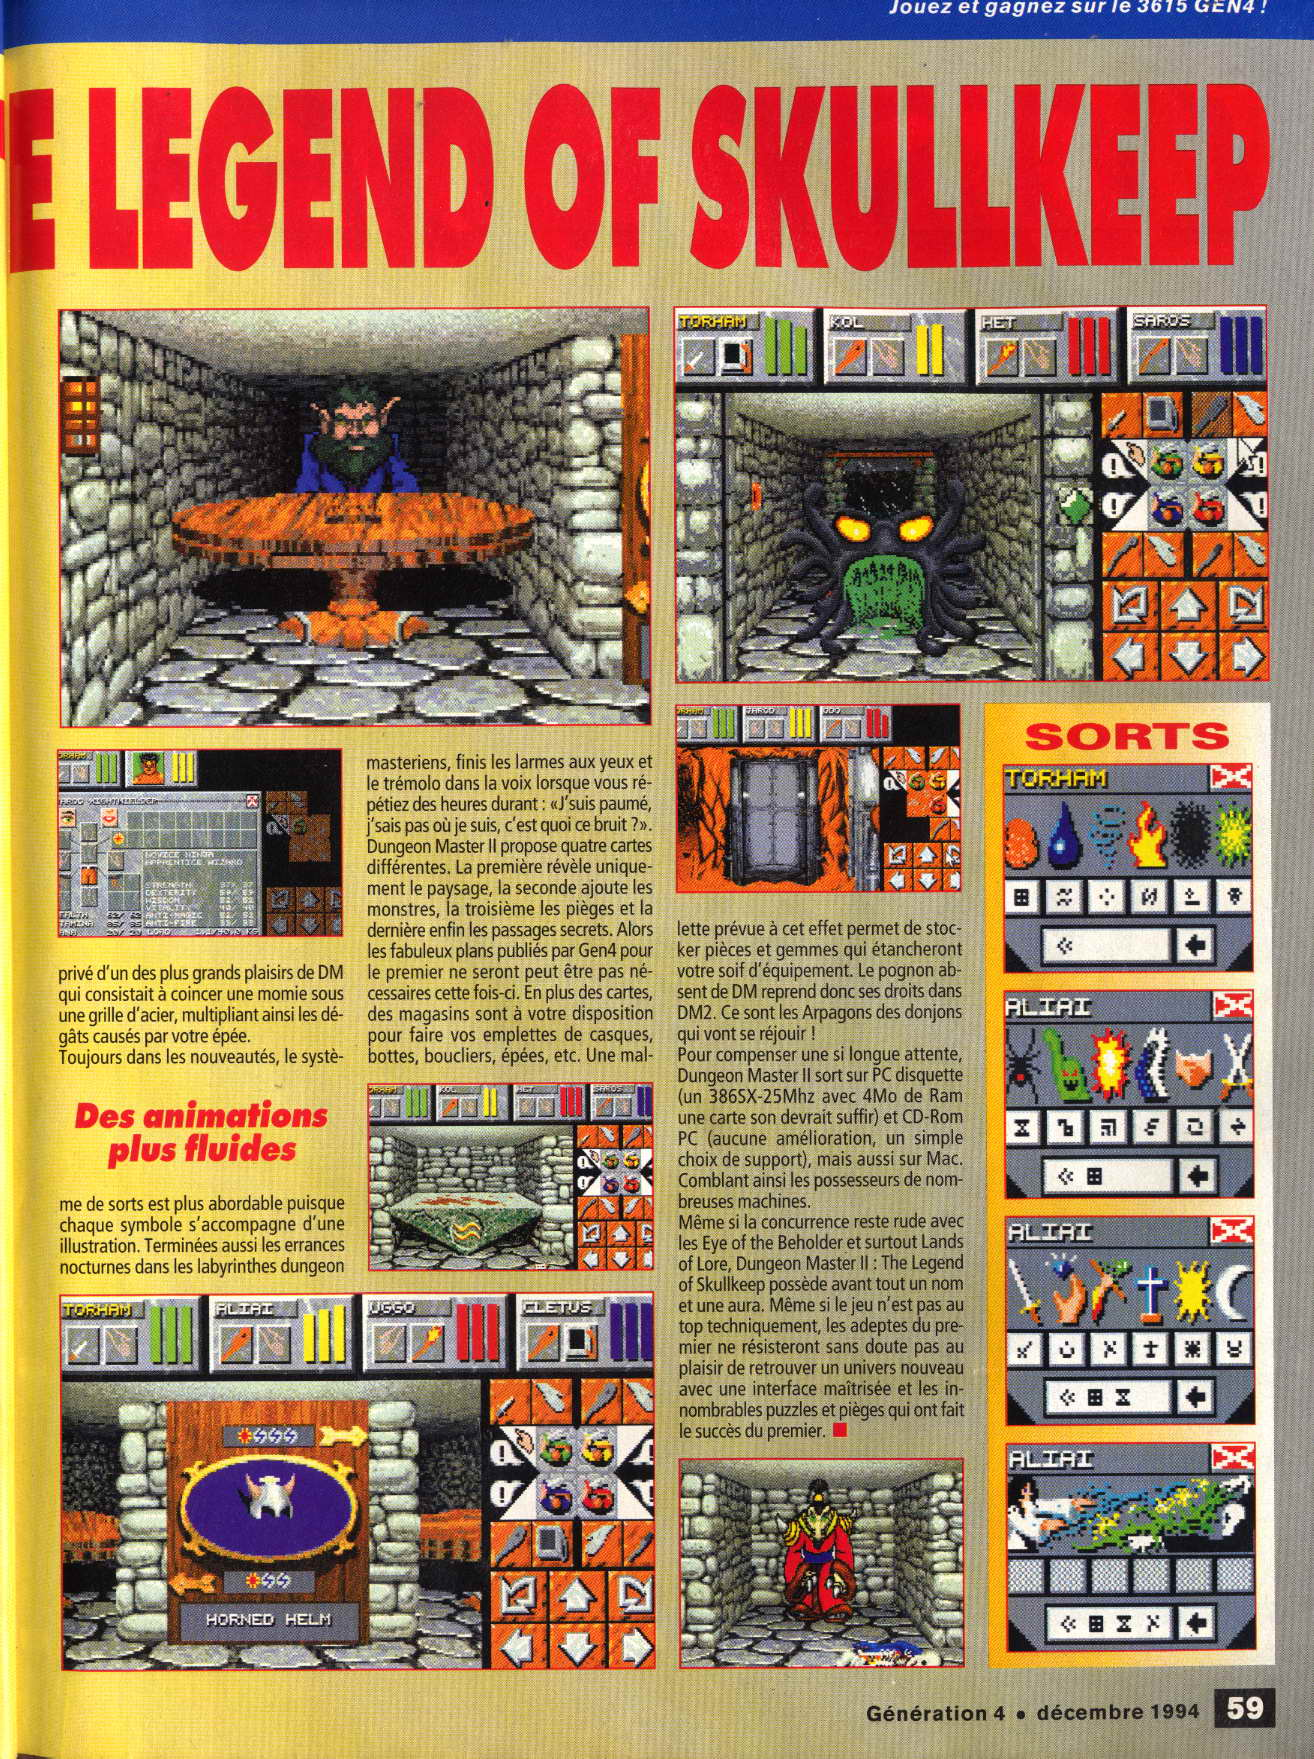 Dungeon Master II for PC Preview published in French magazine 'Generation 4', Issue #72 December 1994, Page 59